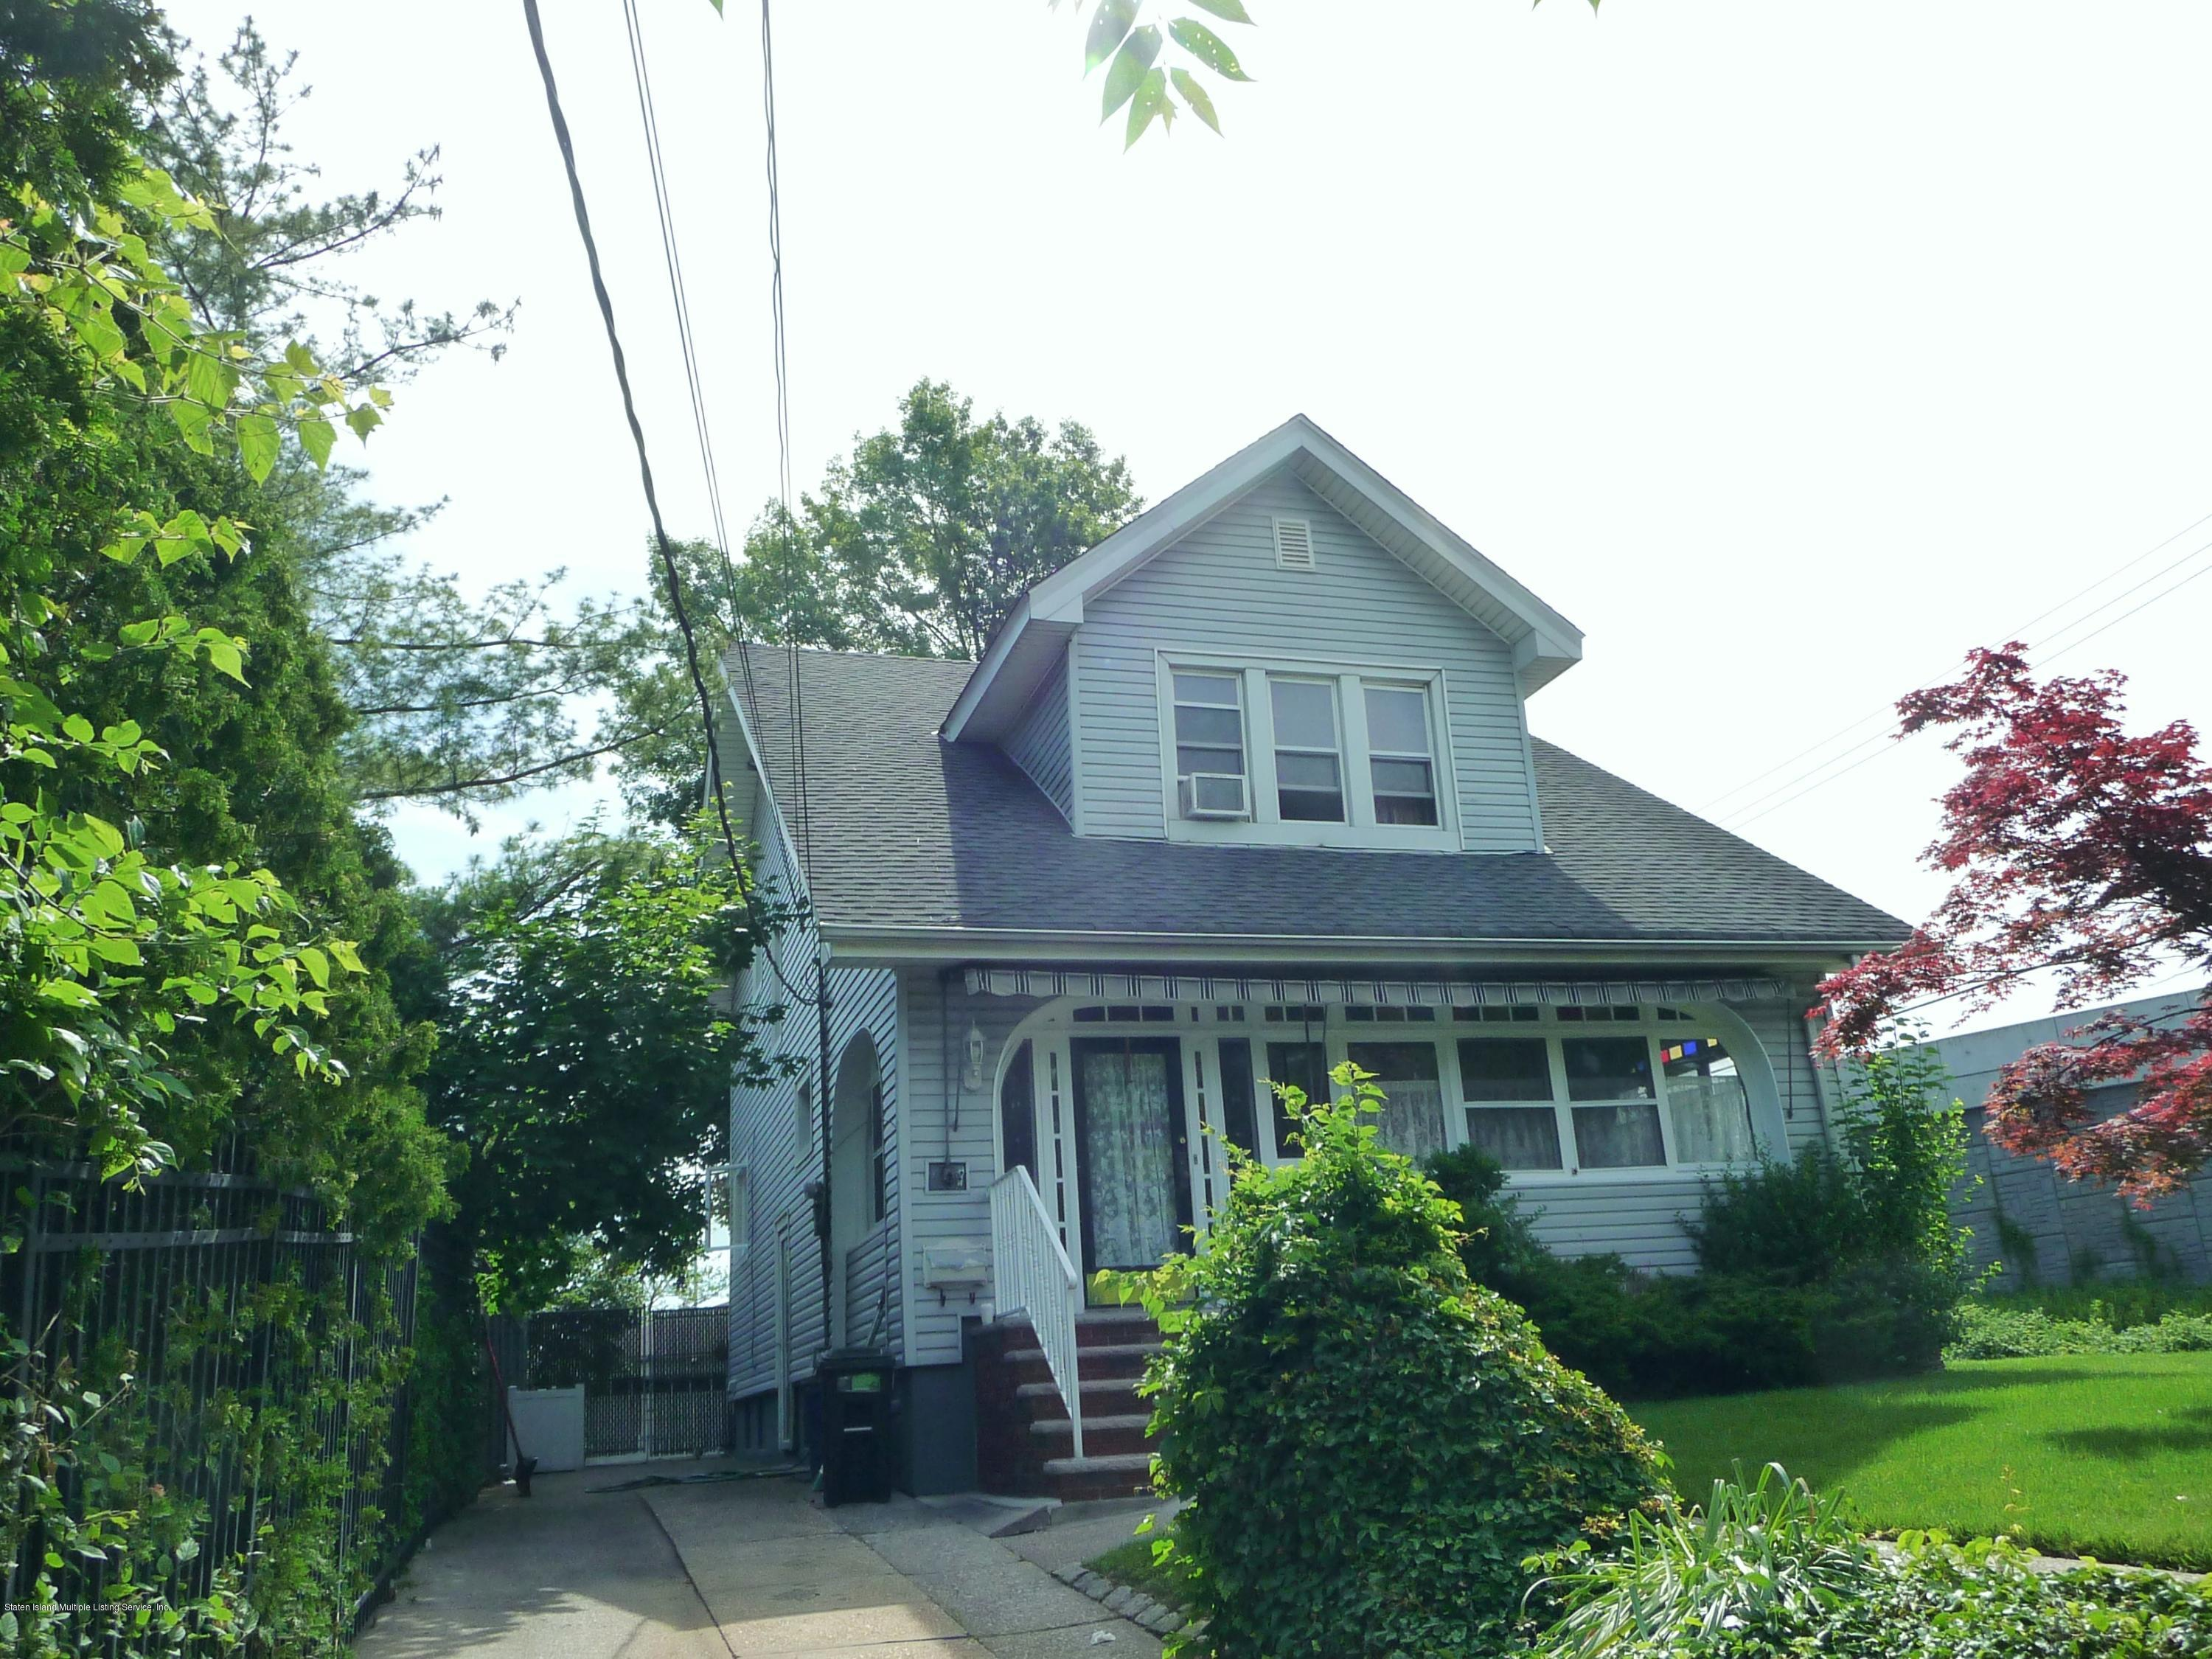 Single Family - Detached 77 Todt Hill Road  Staten Island, NY 10314, MLS-1129718-2